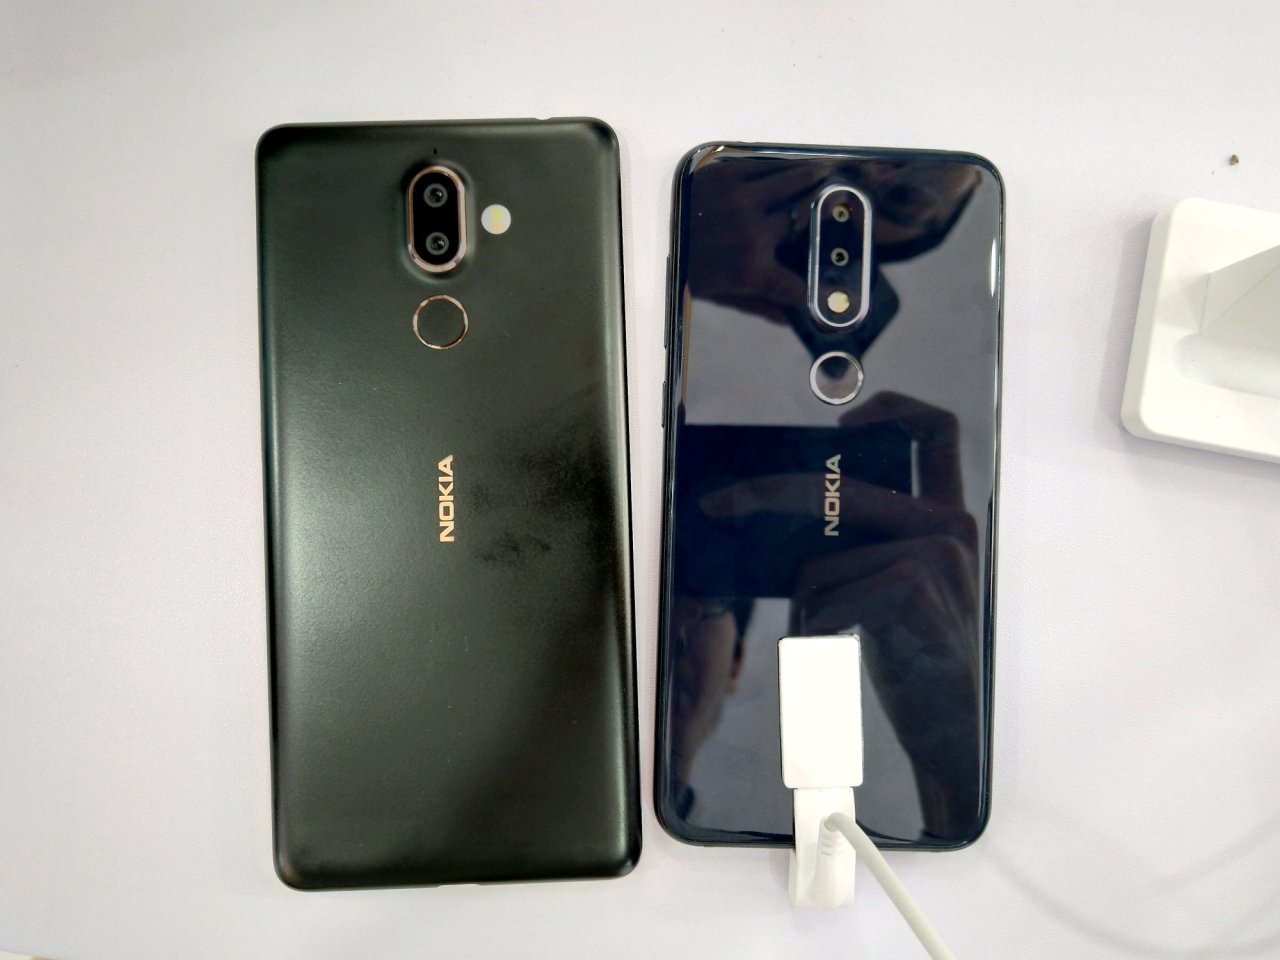 Nokia x6 vs Nokia 7 Plus 1